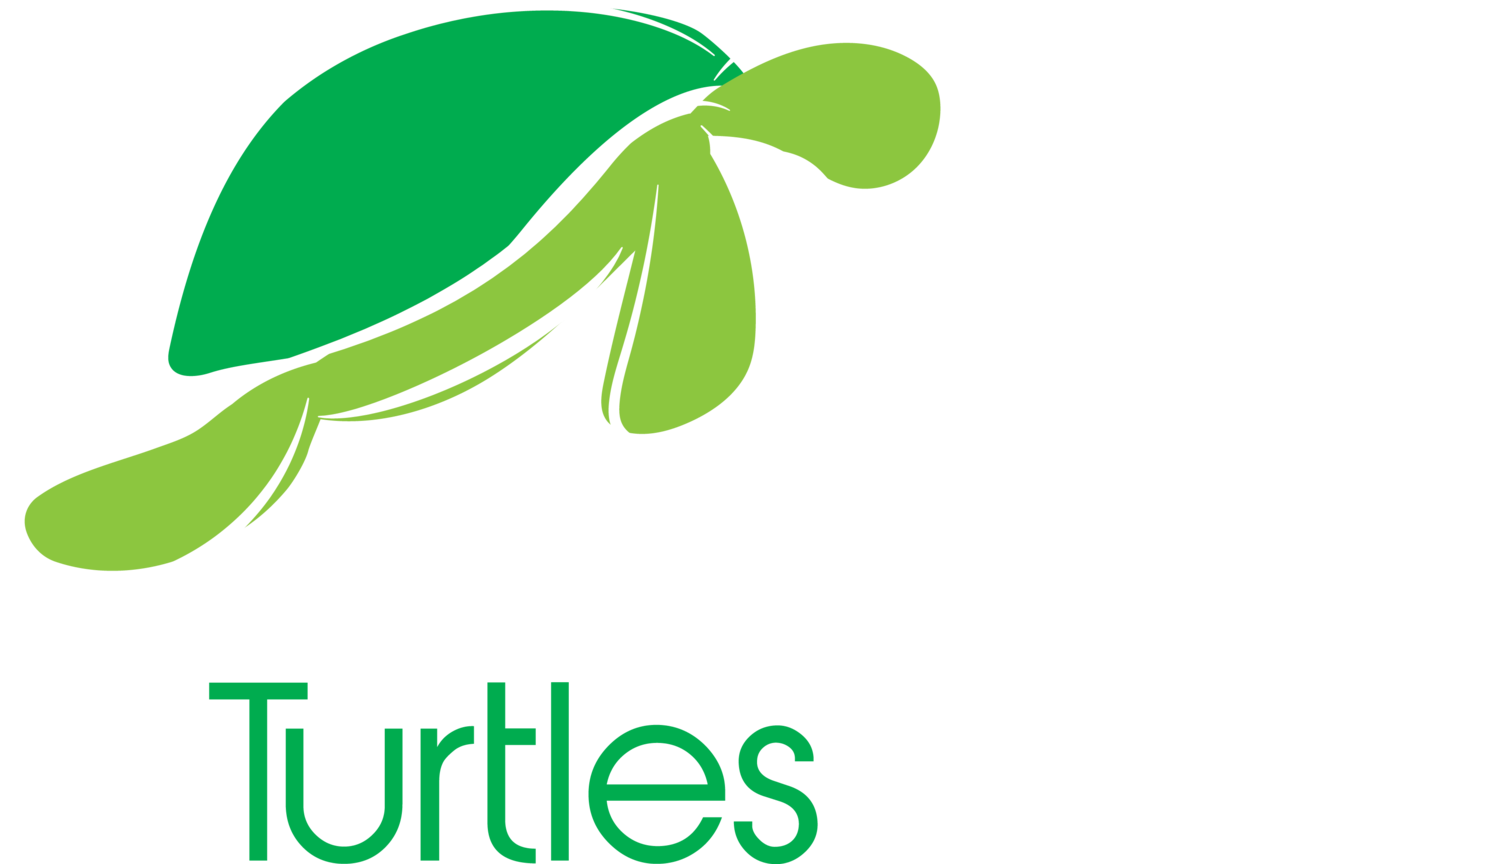 Screaming Turtles